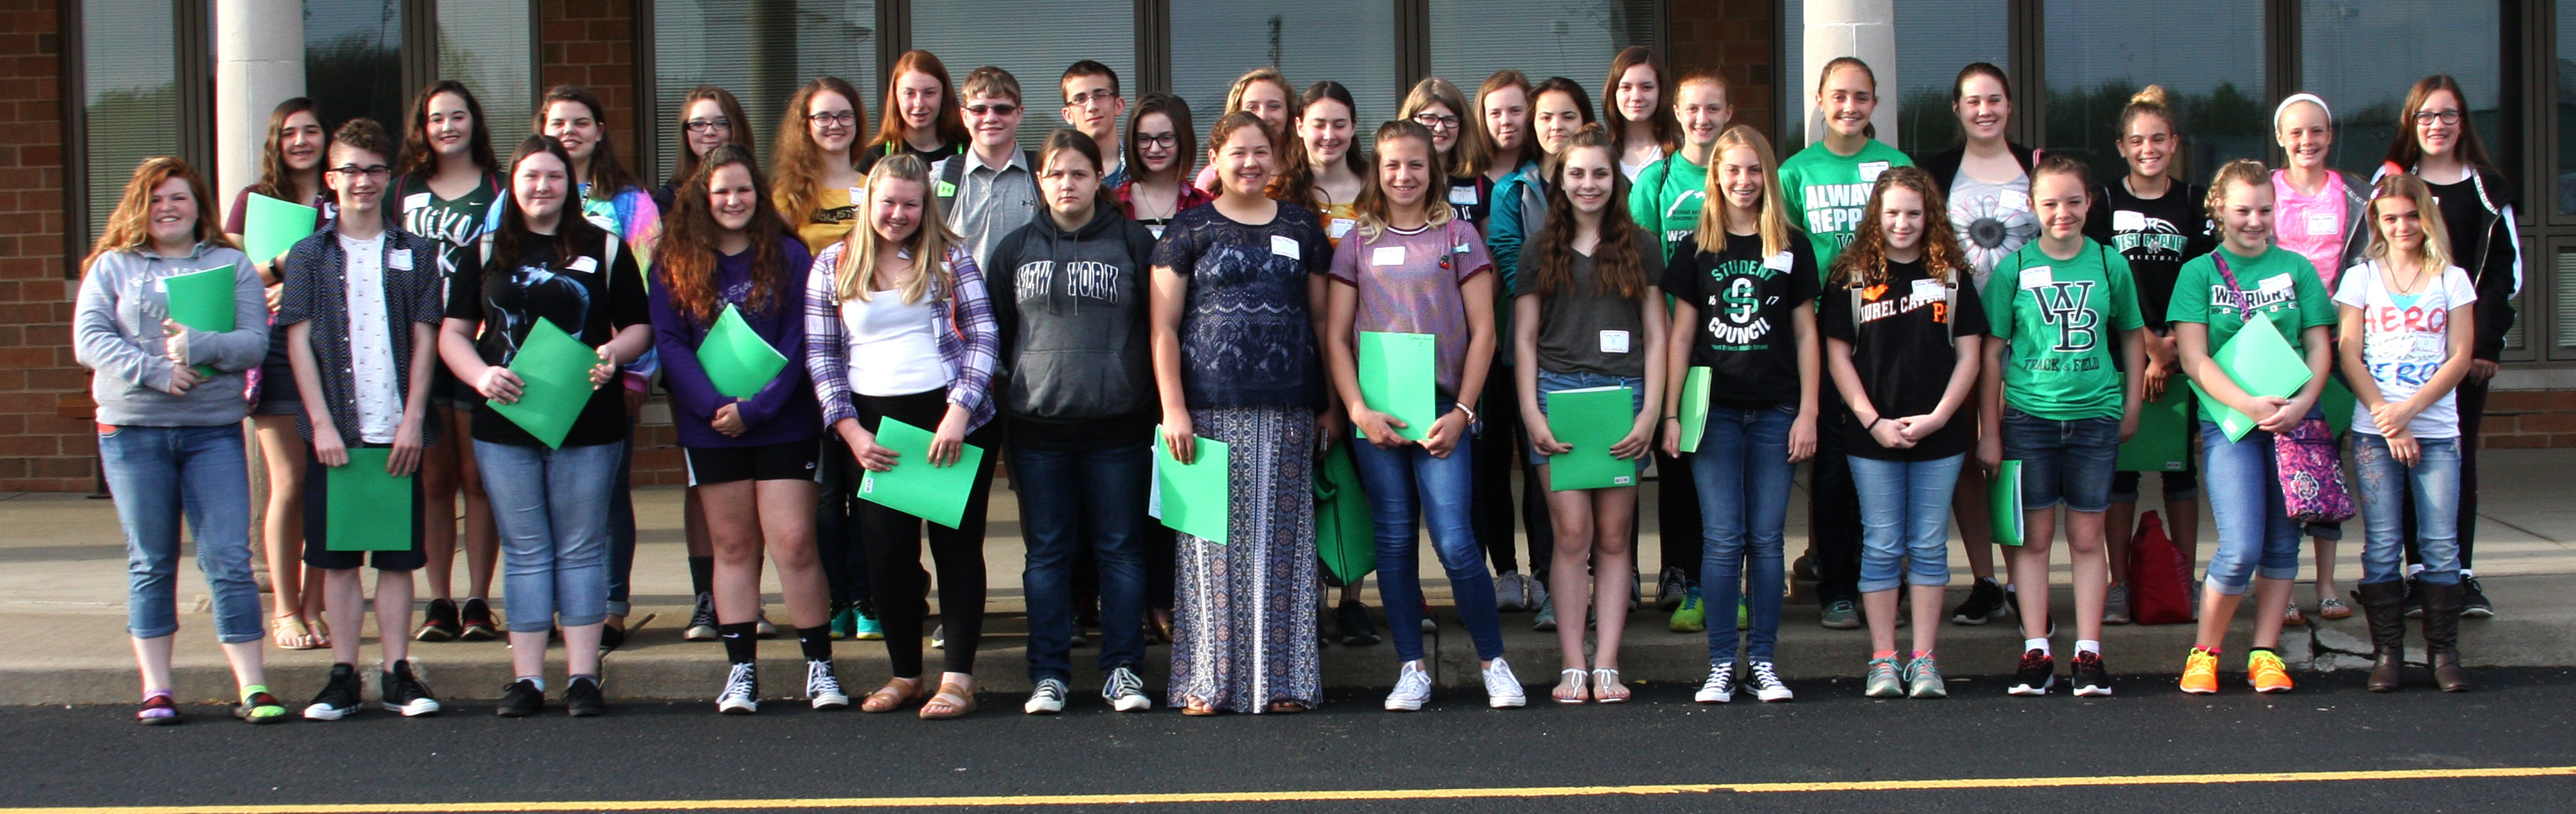 West Branch Students Participate In Ysu English Festival